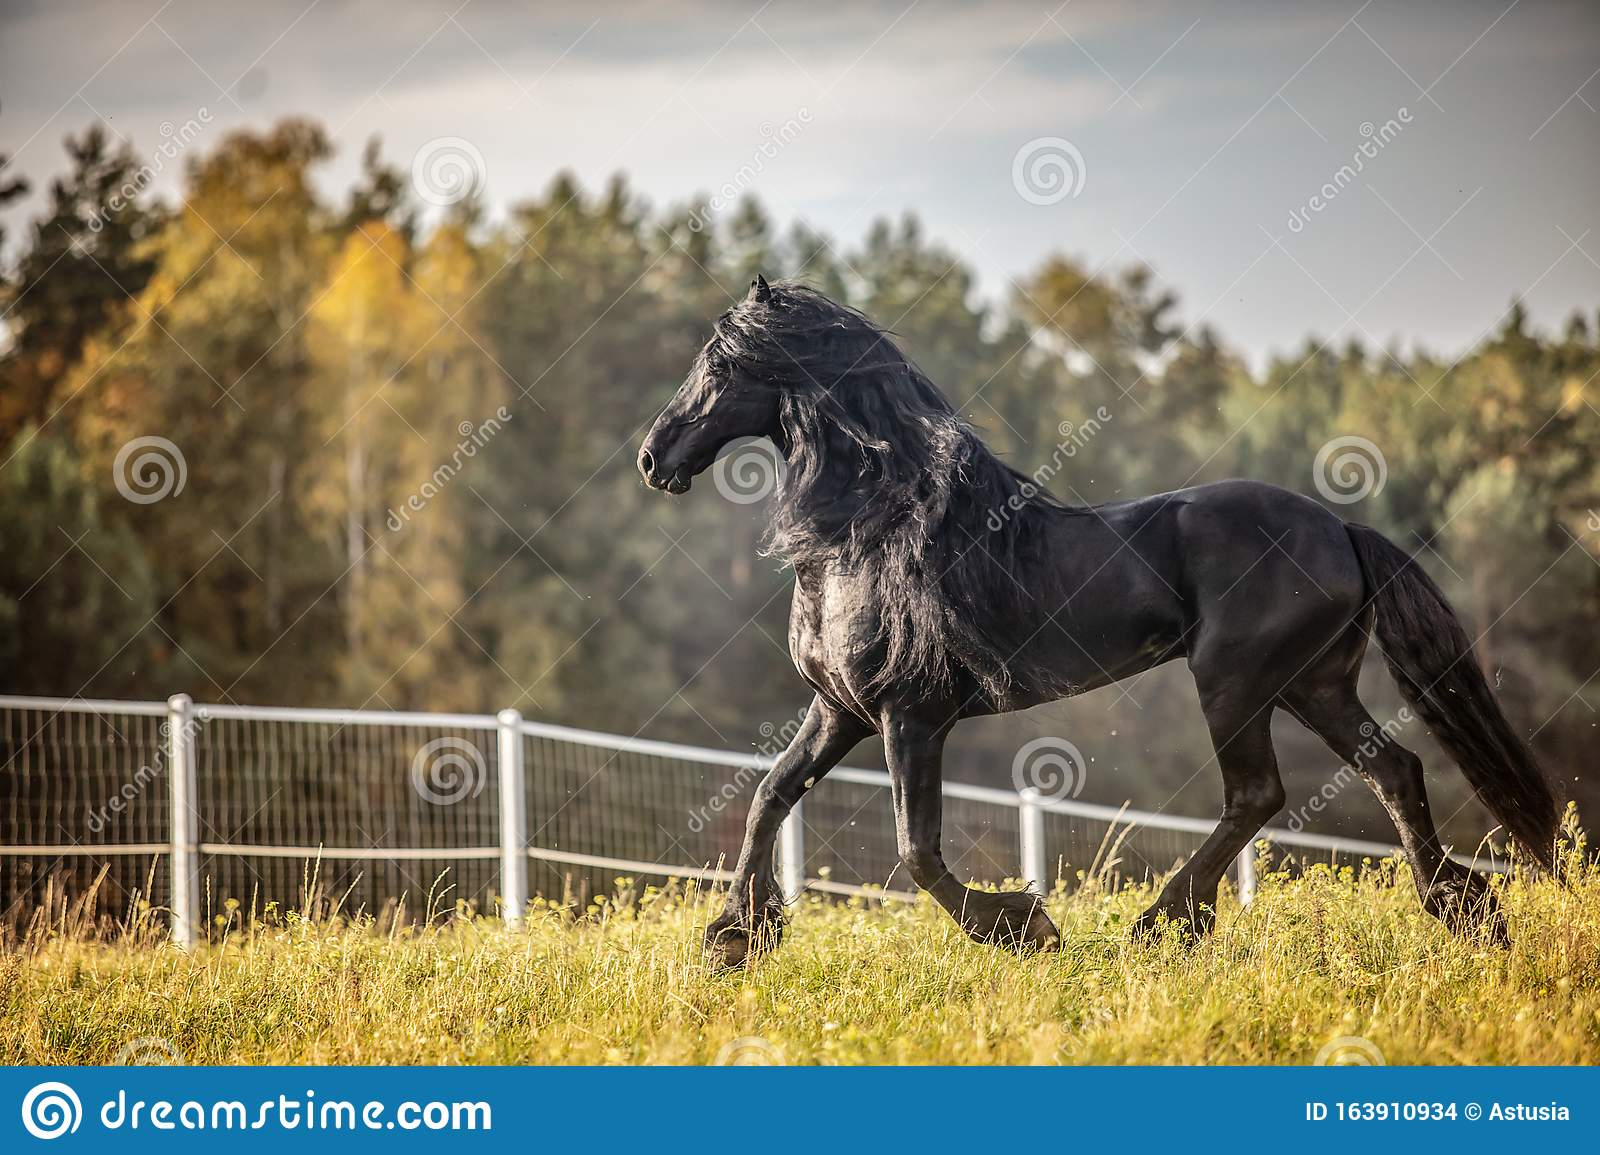 Beautiful Black Horse The Friesian Stallion Gallops On The Autumn Meadow Stock Photo Image Of Mare Green 163910934